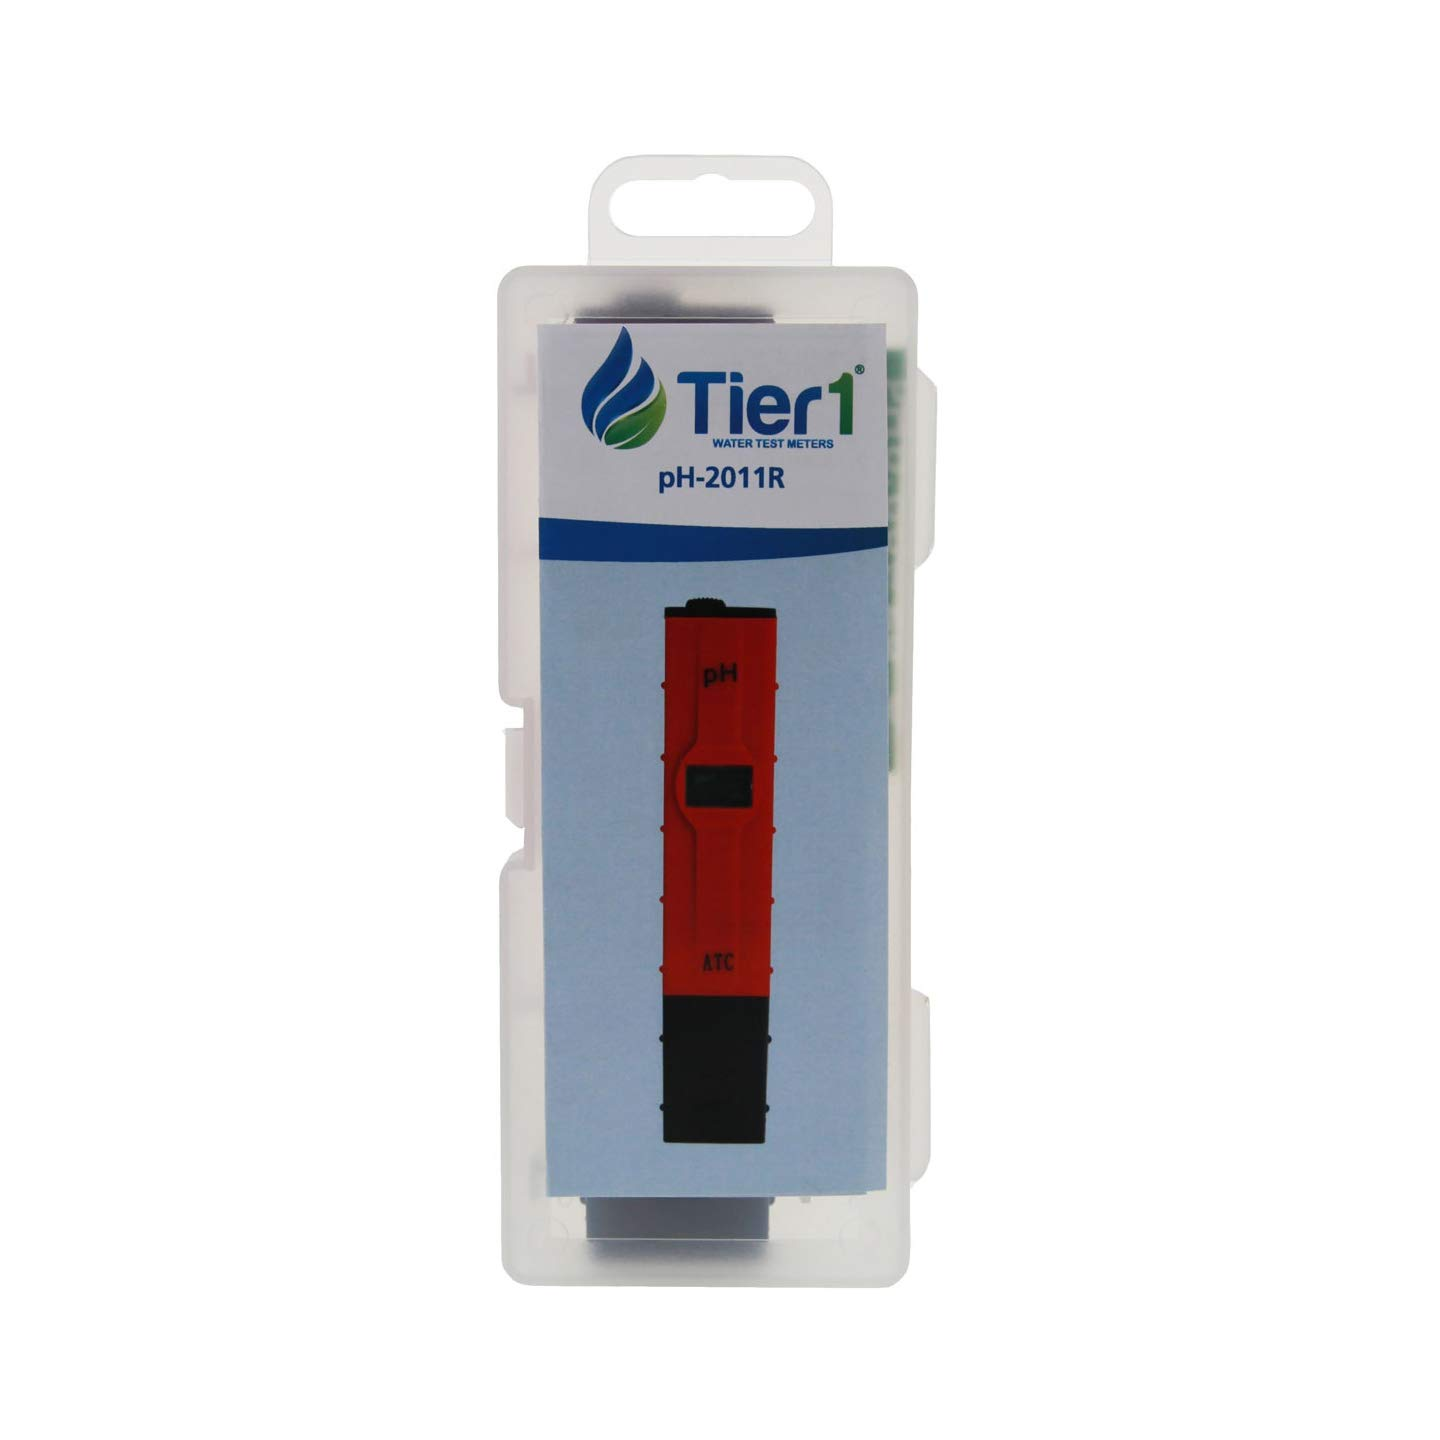 PH-2011R PH Pen Type Meter with Auto Temperature Compensation & Backlight Display